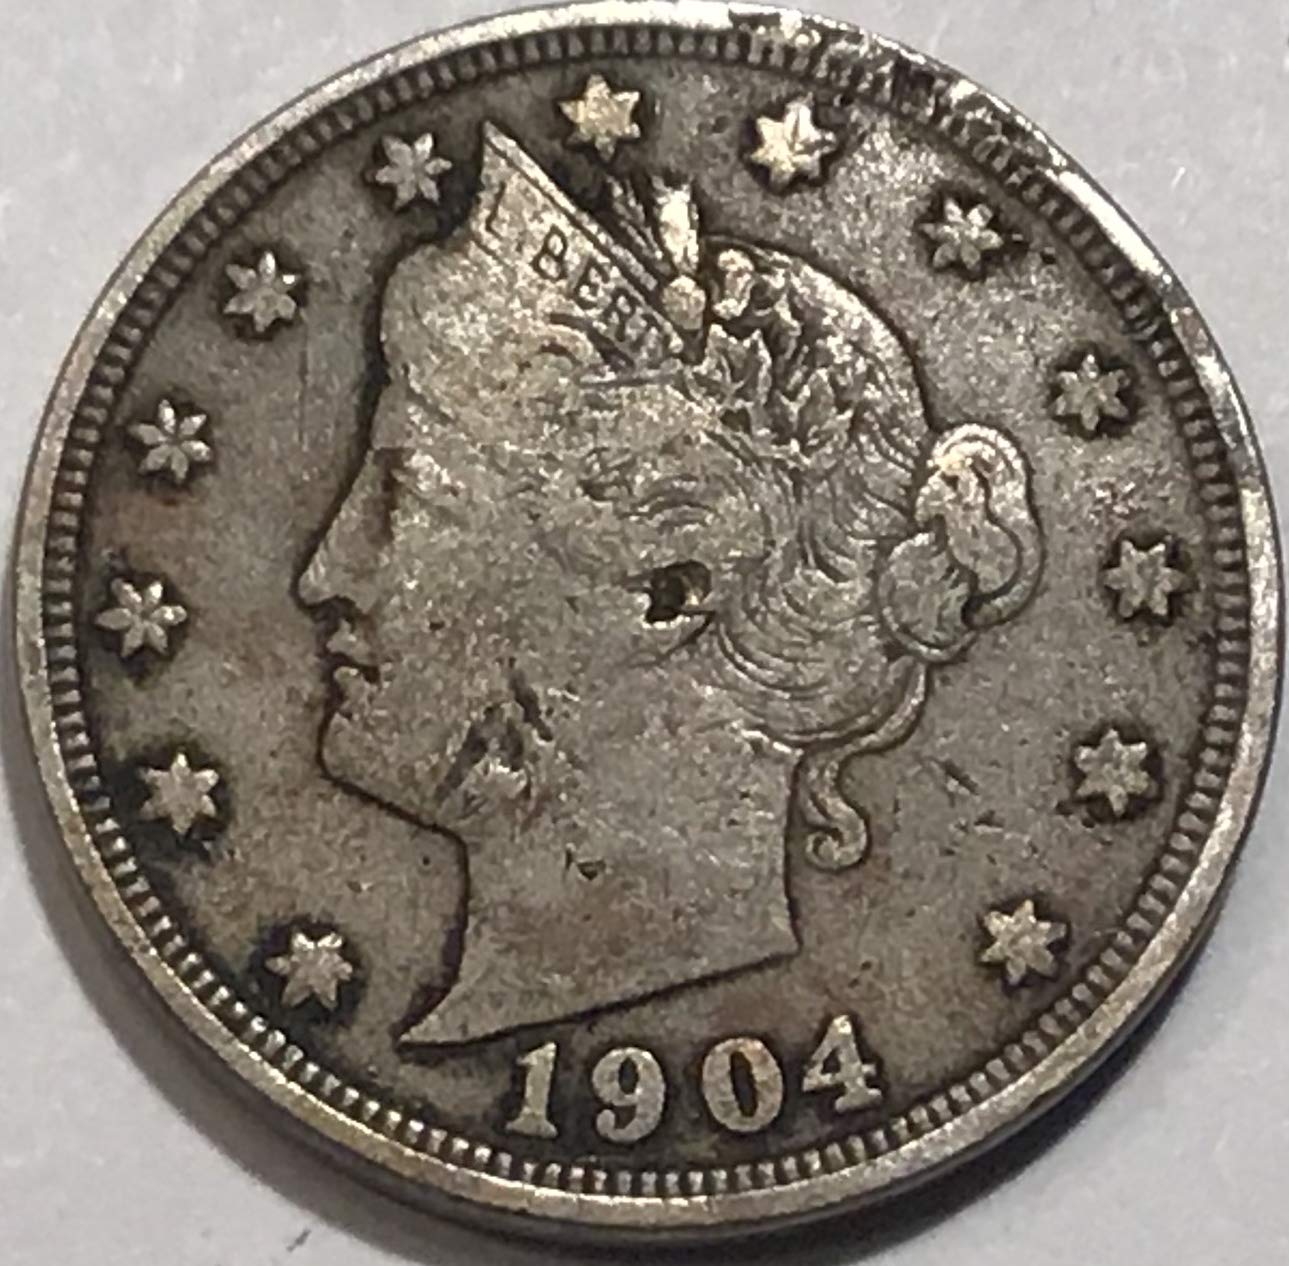 1904 Liberty V Nickel Fine At Amazon S Collectible Coins Store